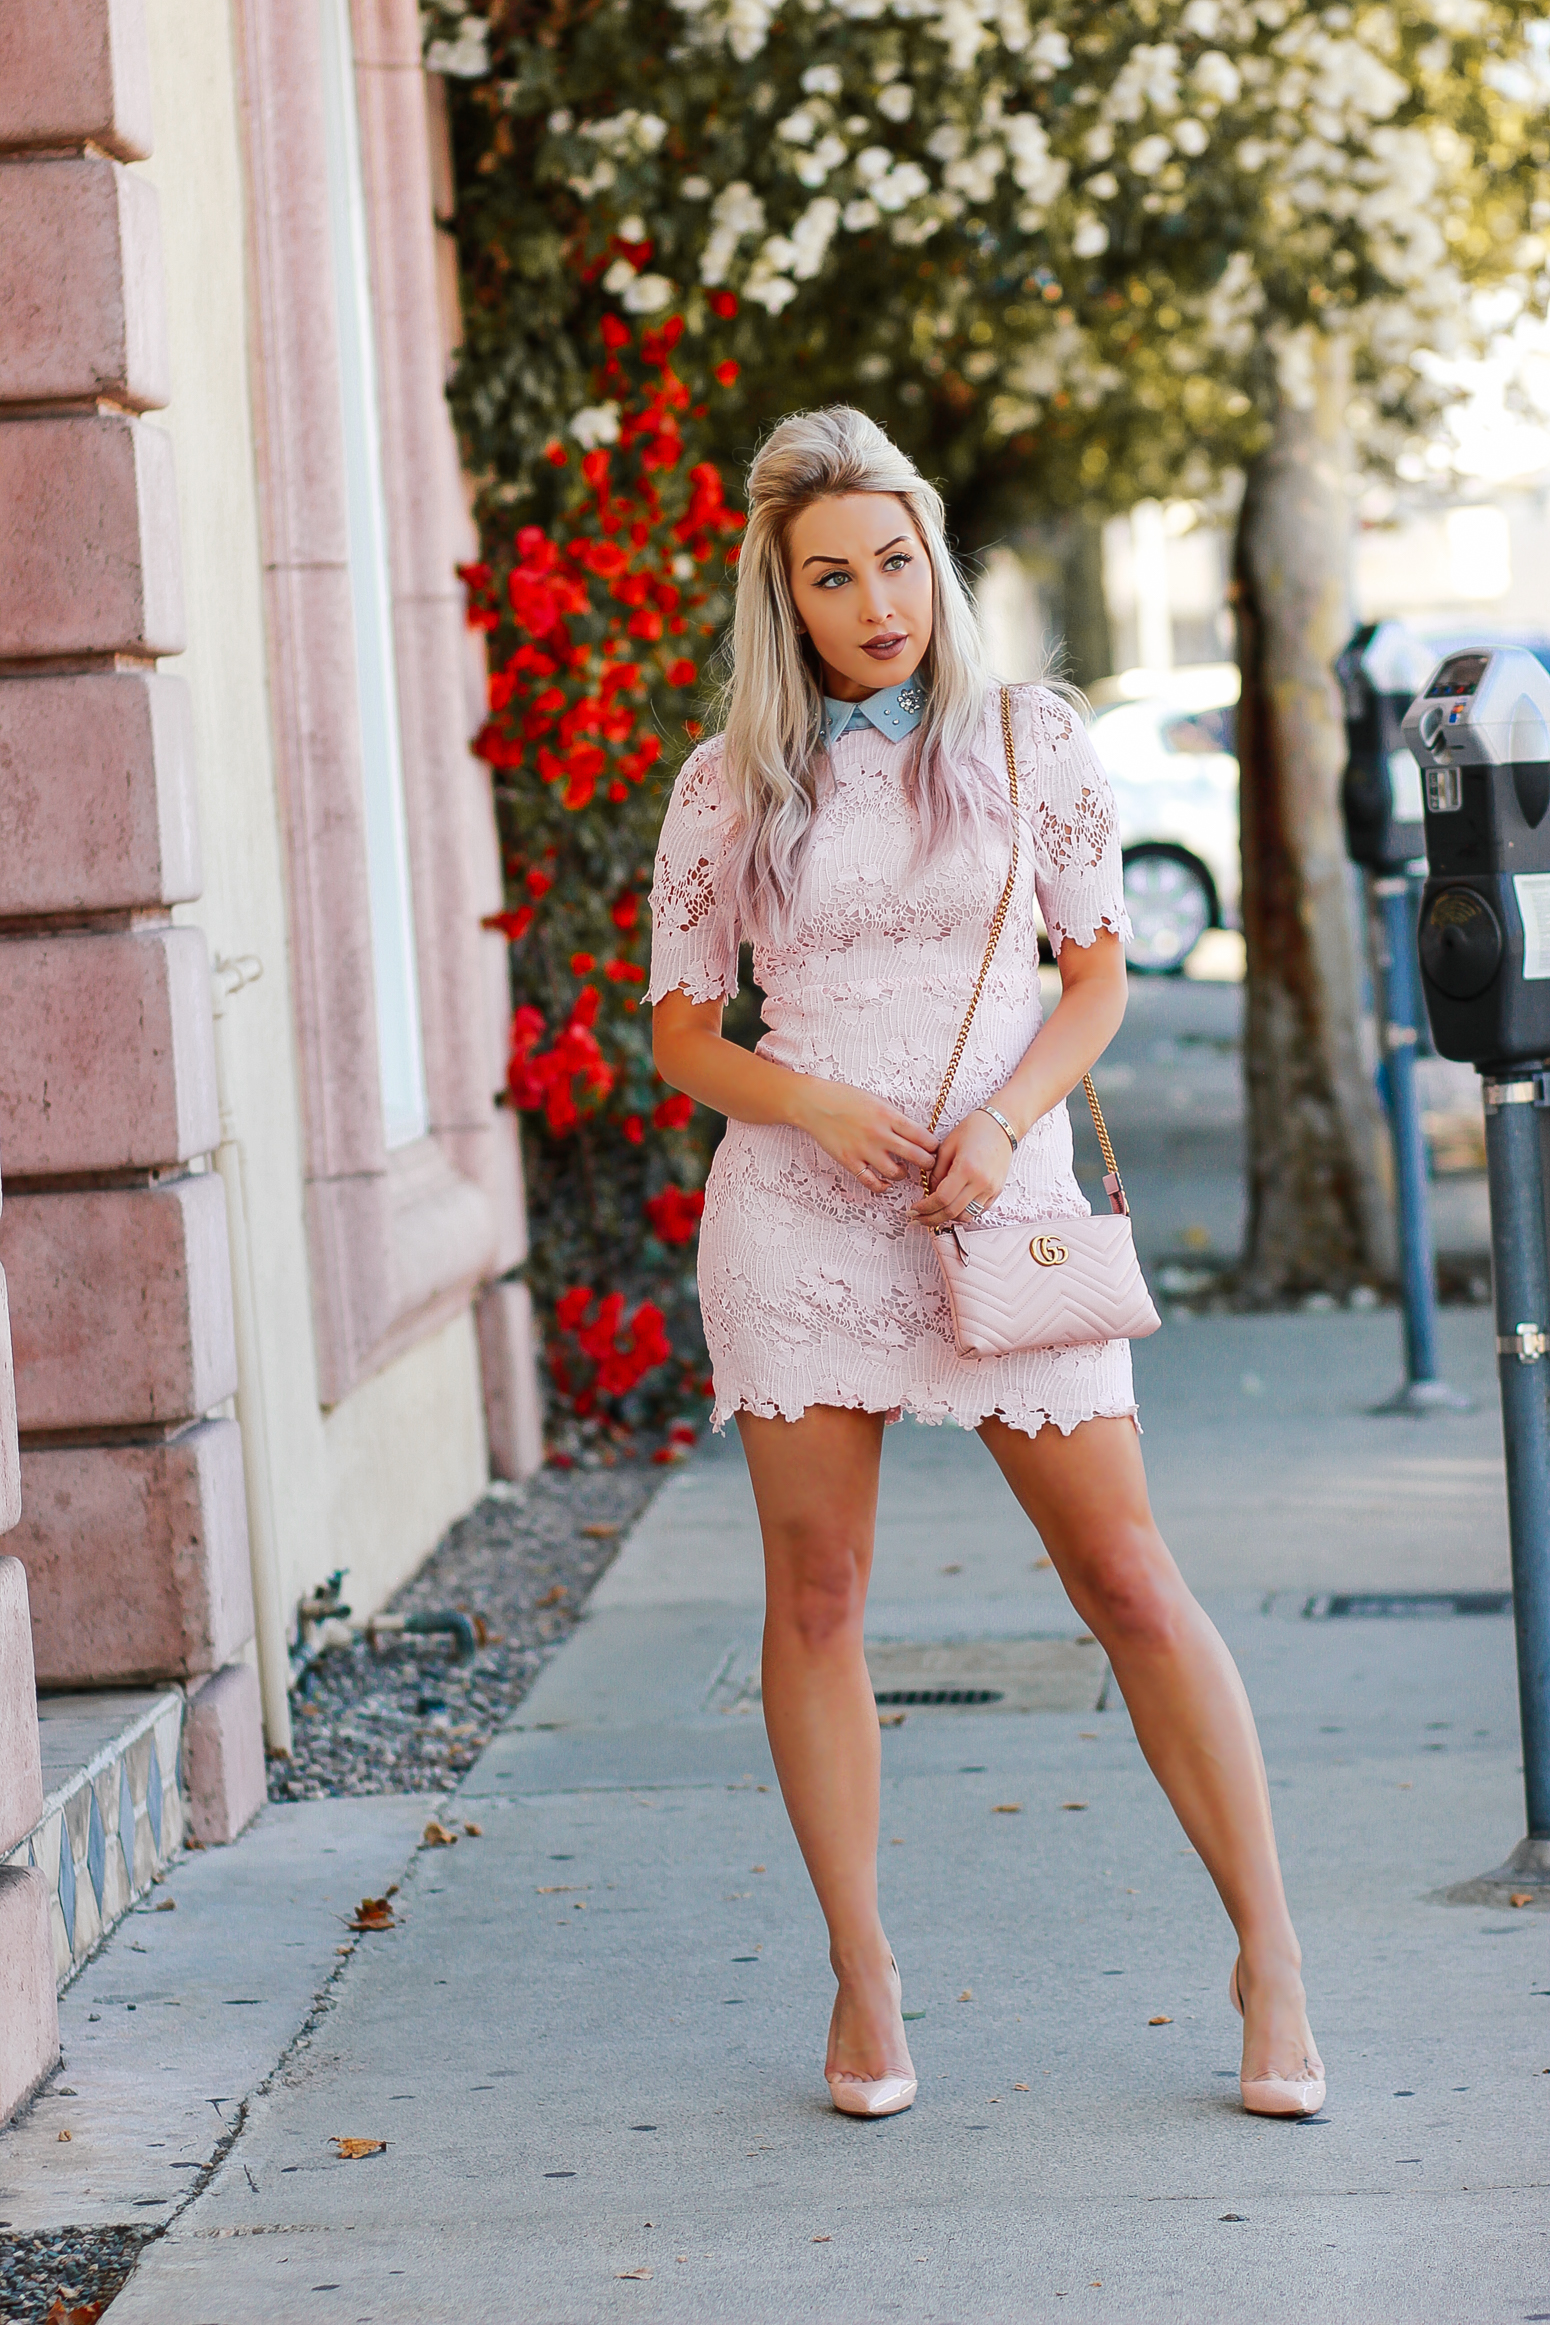 Blondie in the City | Gossip Girl/Blair Waldorf Vibes | Pink & Blue Pastel Lace Dress | Pink Christian Louboutin's